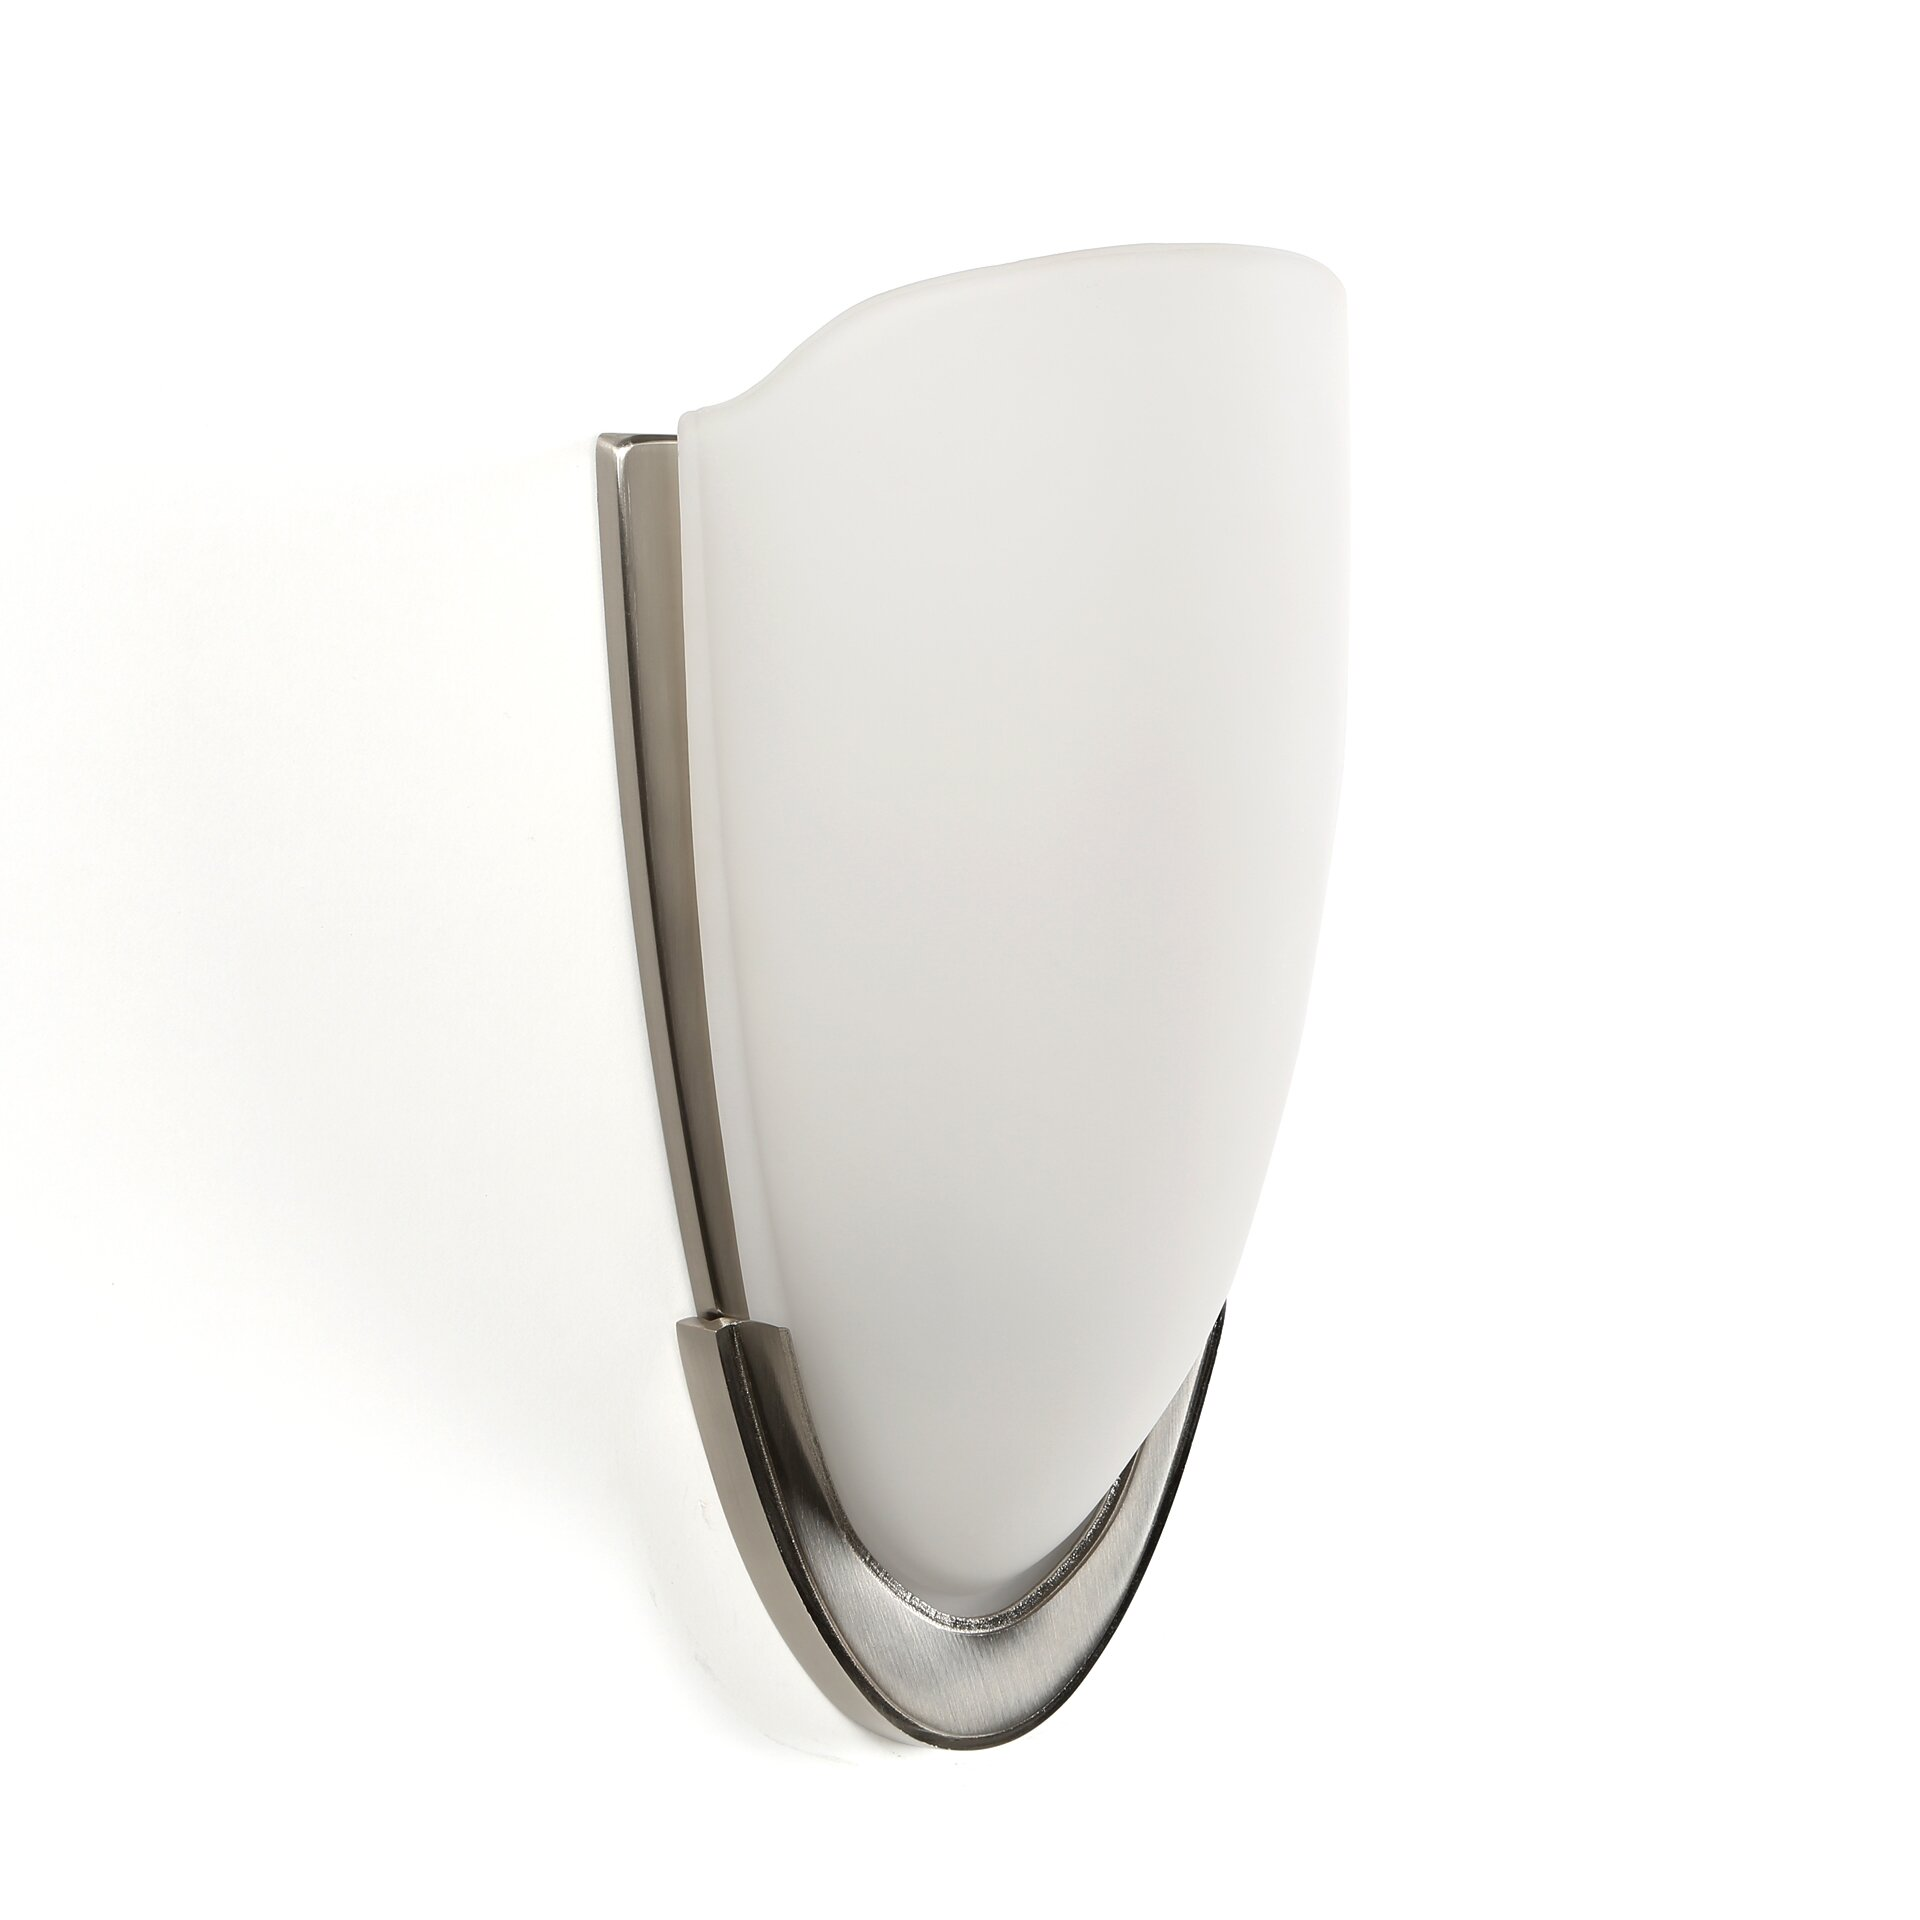 Ada Bathroom Wall Sconces : Progress Lighting ADA Sconces Wall Sconce in Brushed Nickel with Etched Glass & Reviews Wayfair